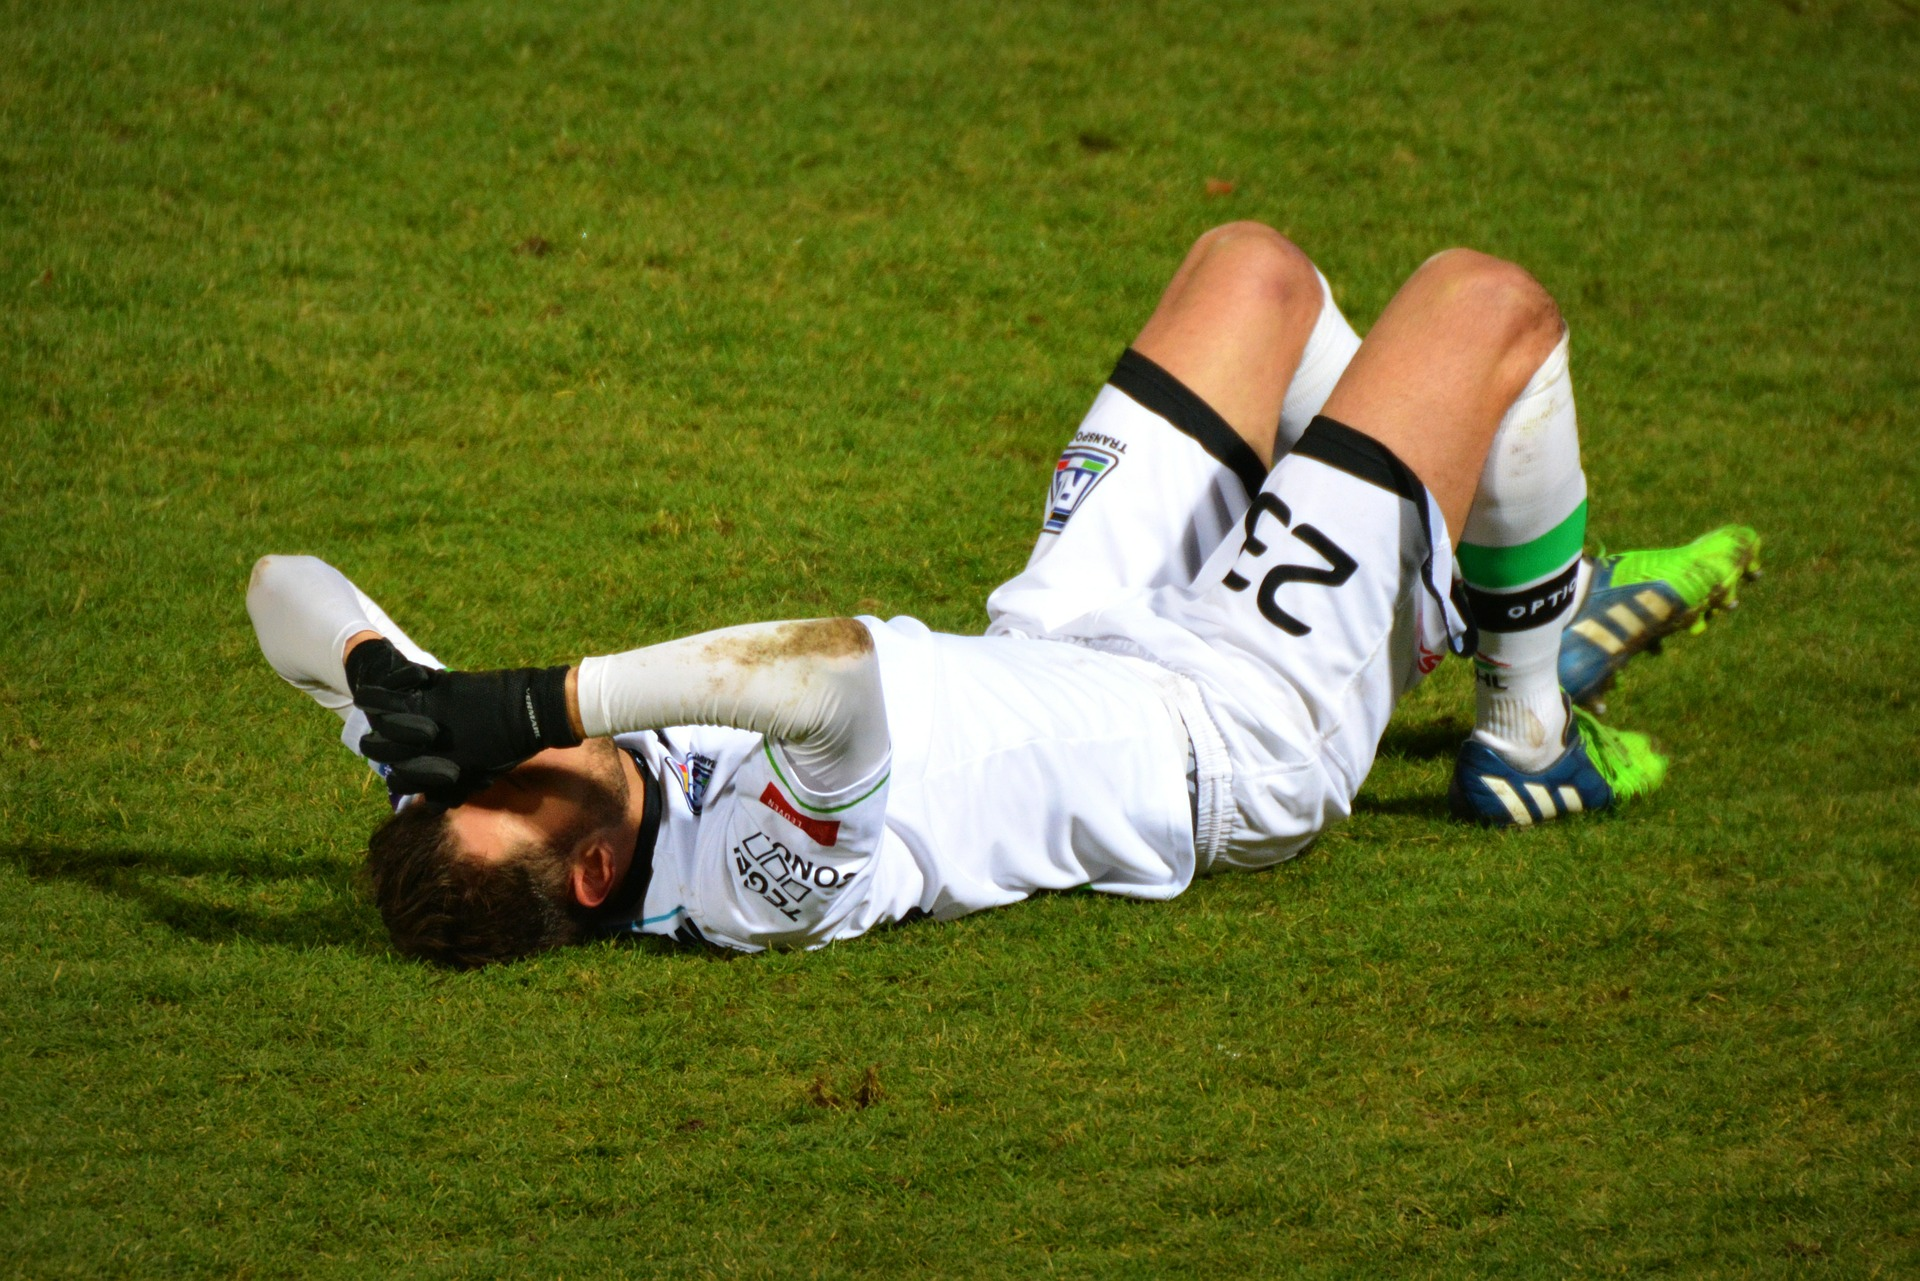 5 Most Common Football Related Injuries in Adults